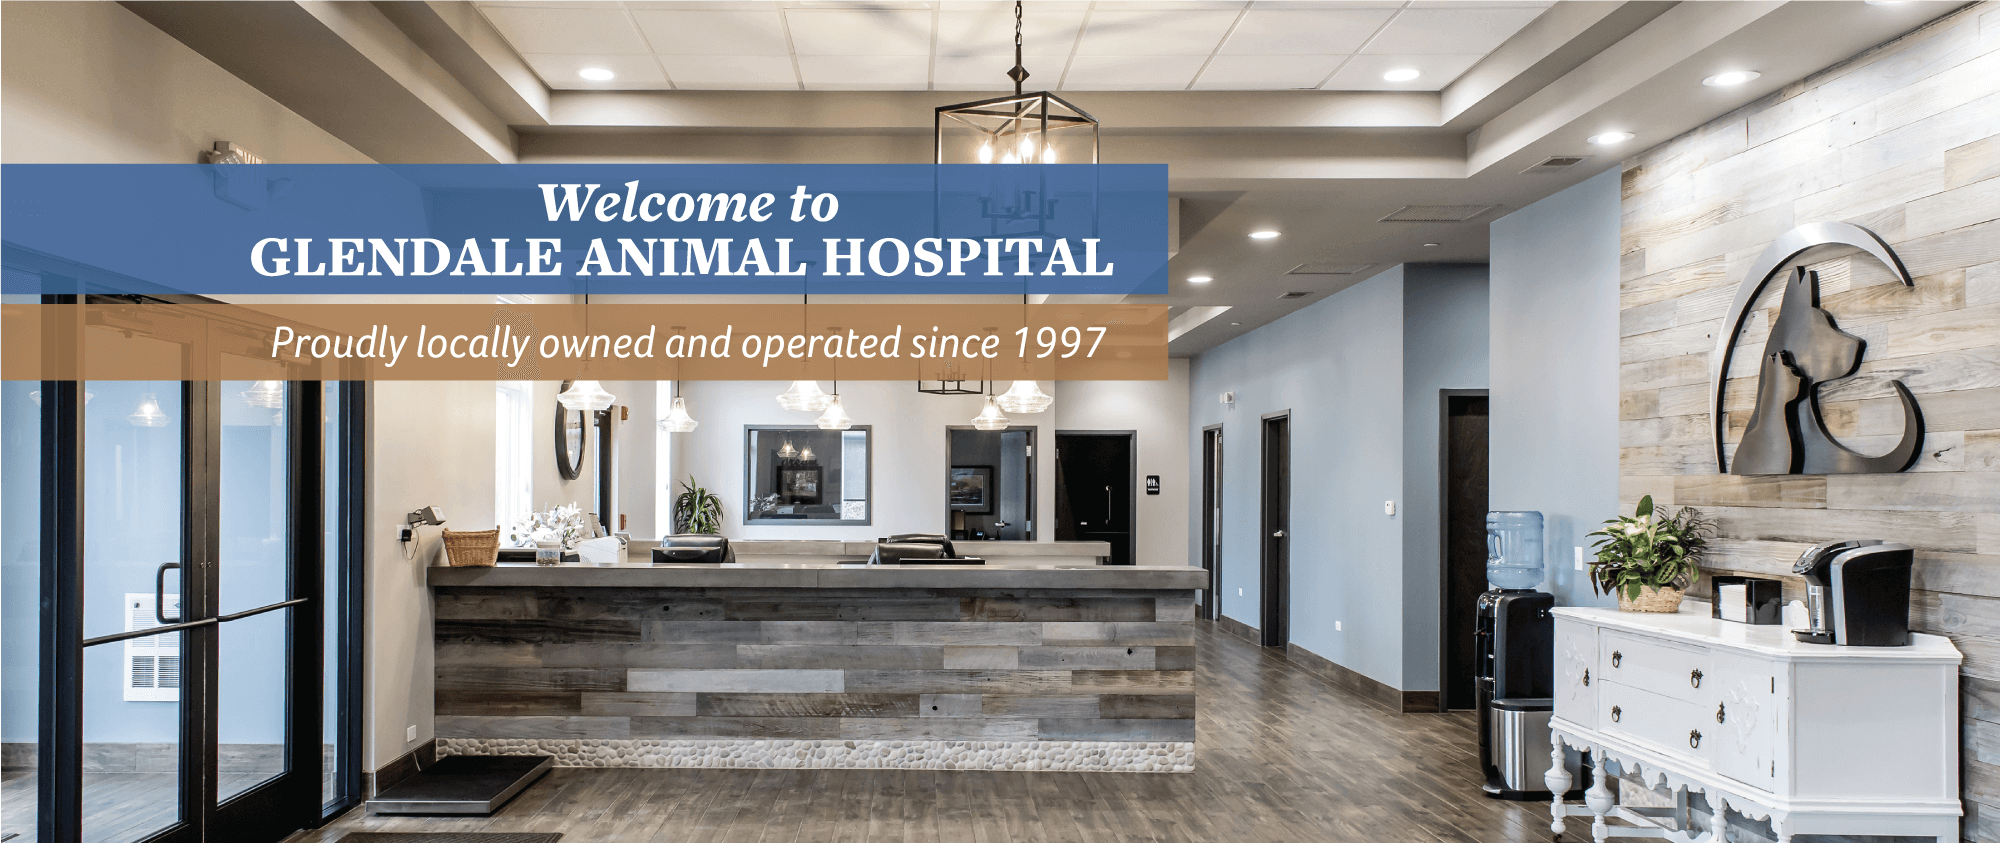 Welcome to Glendale Animal Hospital